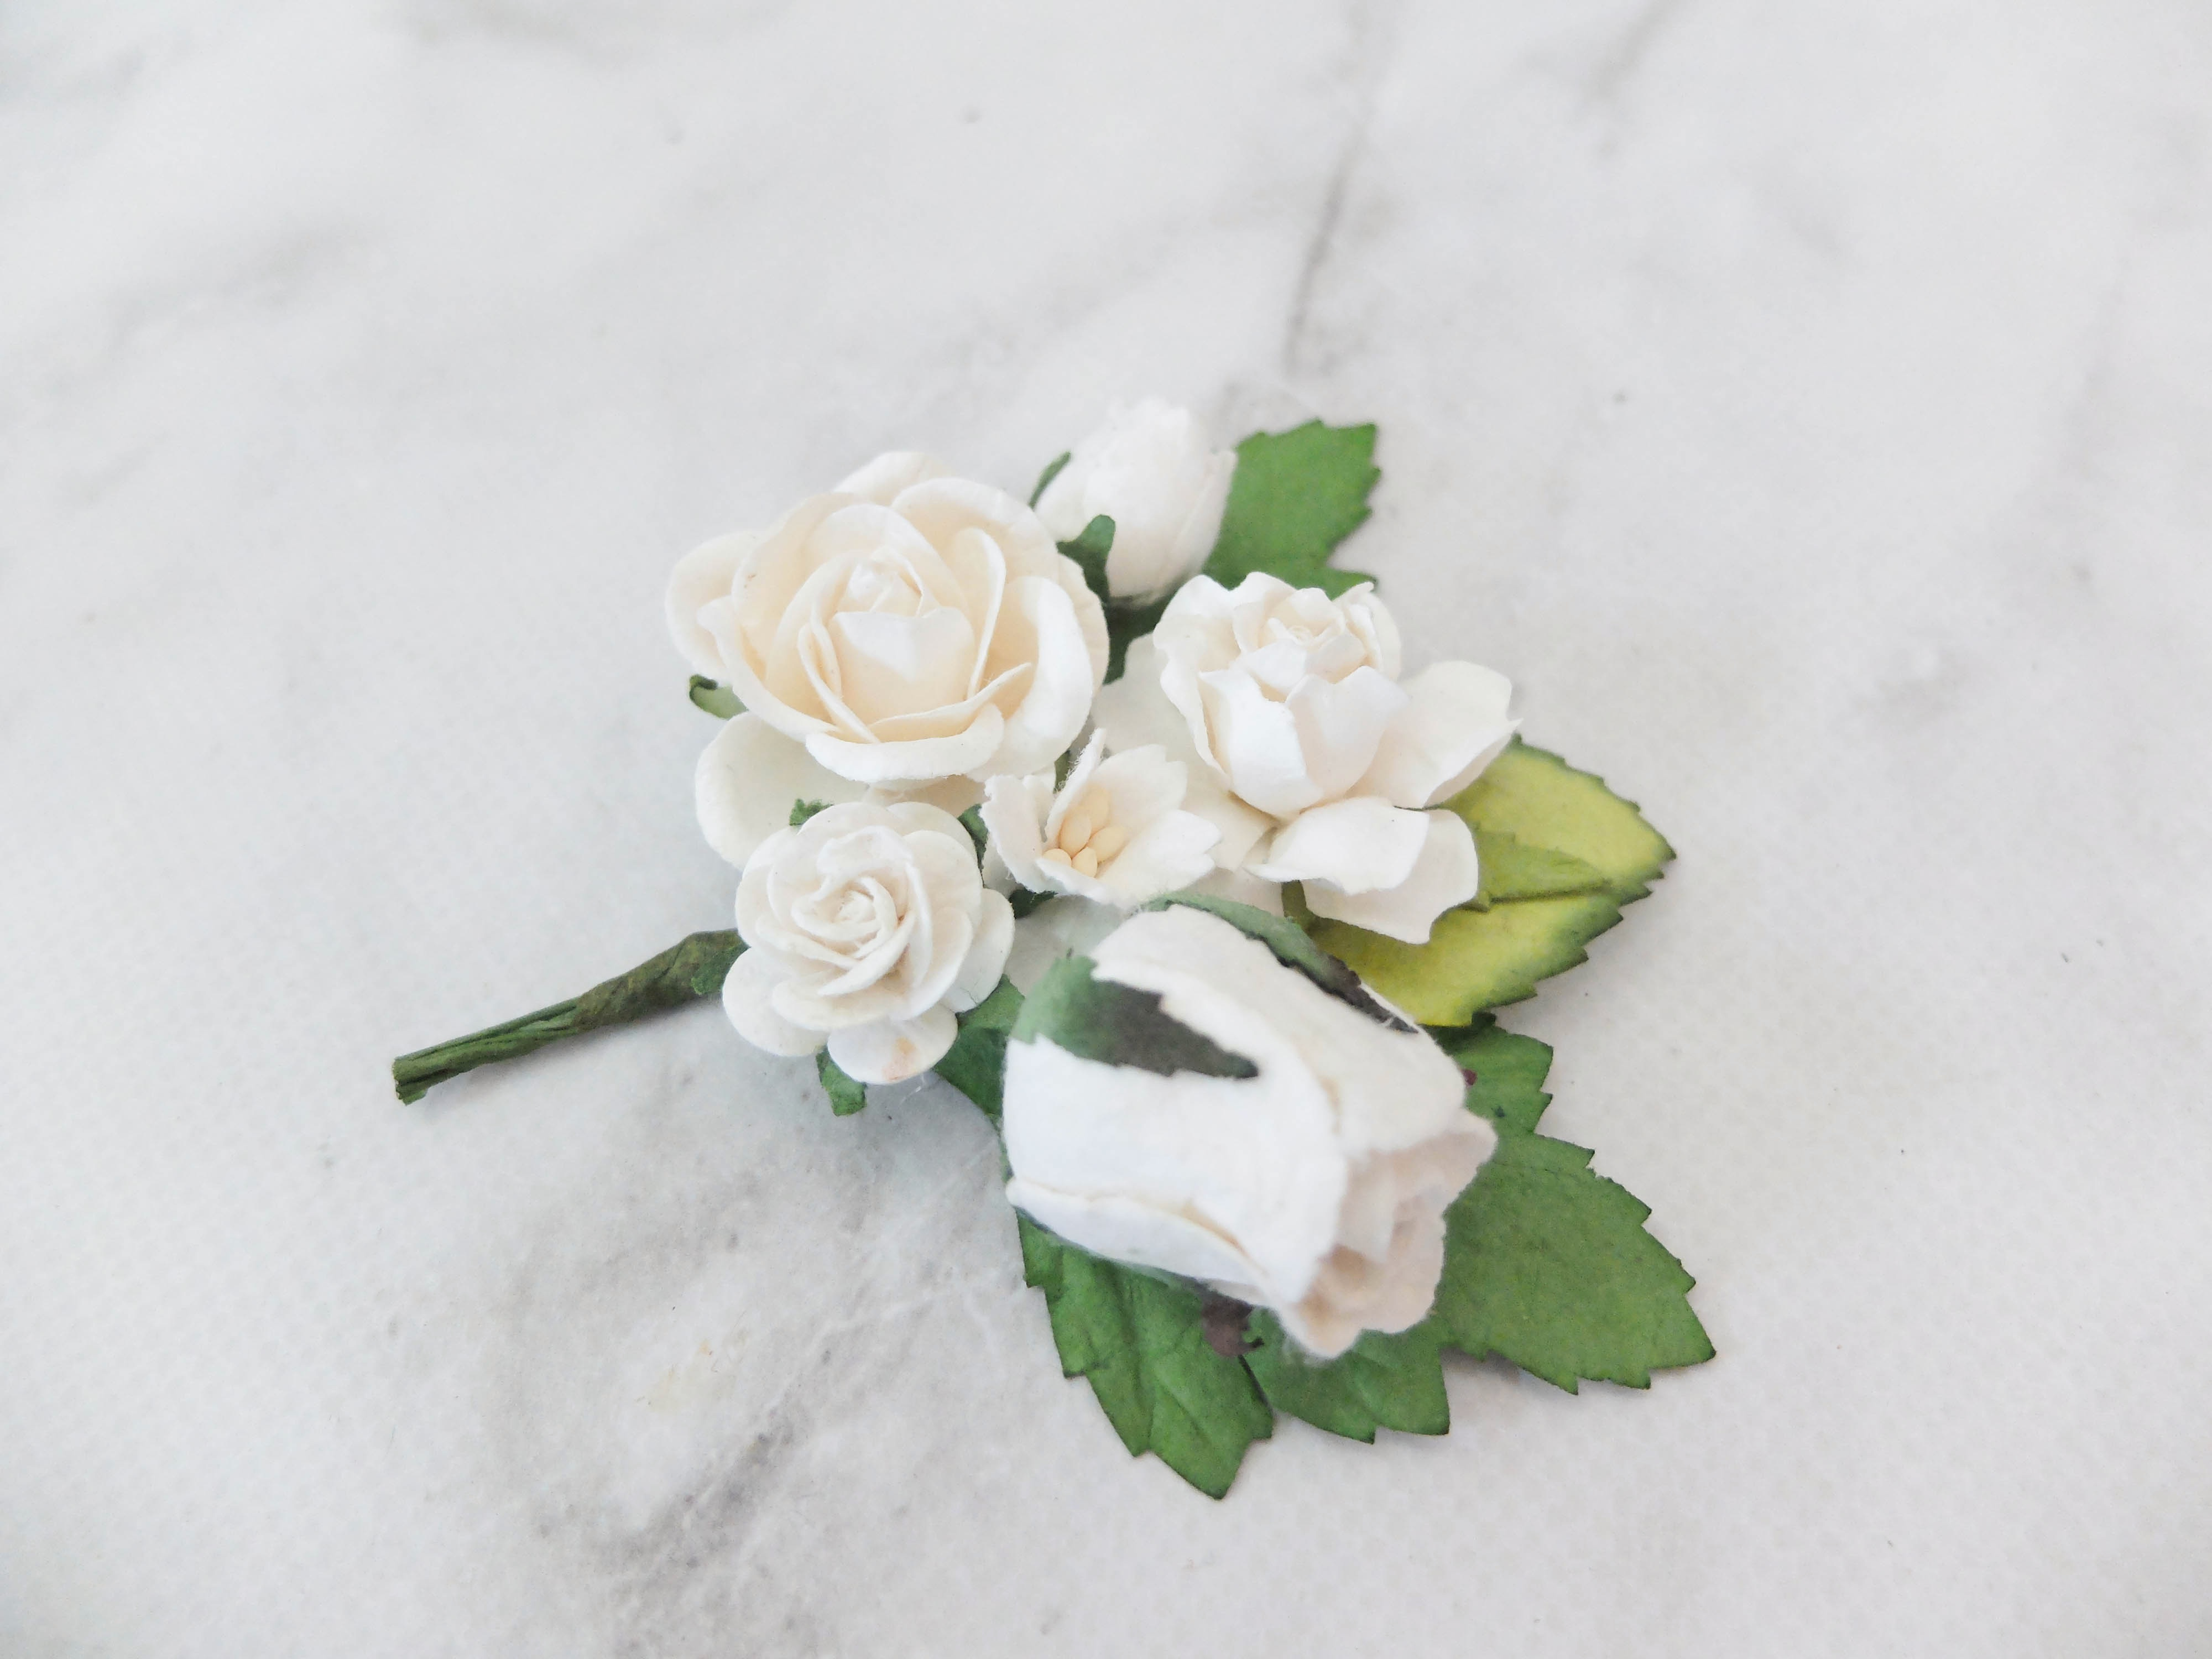 Wedding flower boutonnire buttonhole white flower corsage wedding flower boutonnire buttonhole white flower corsage mightylinksfo